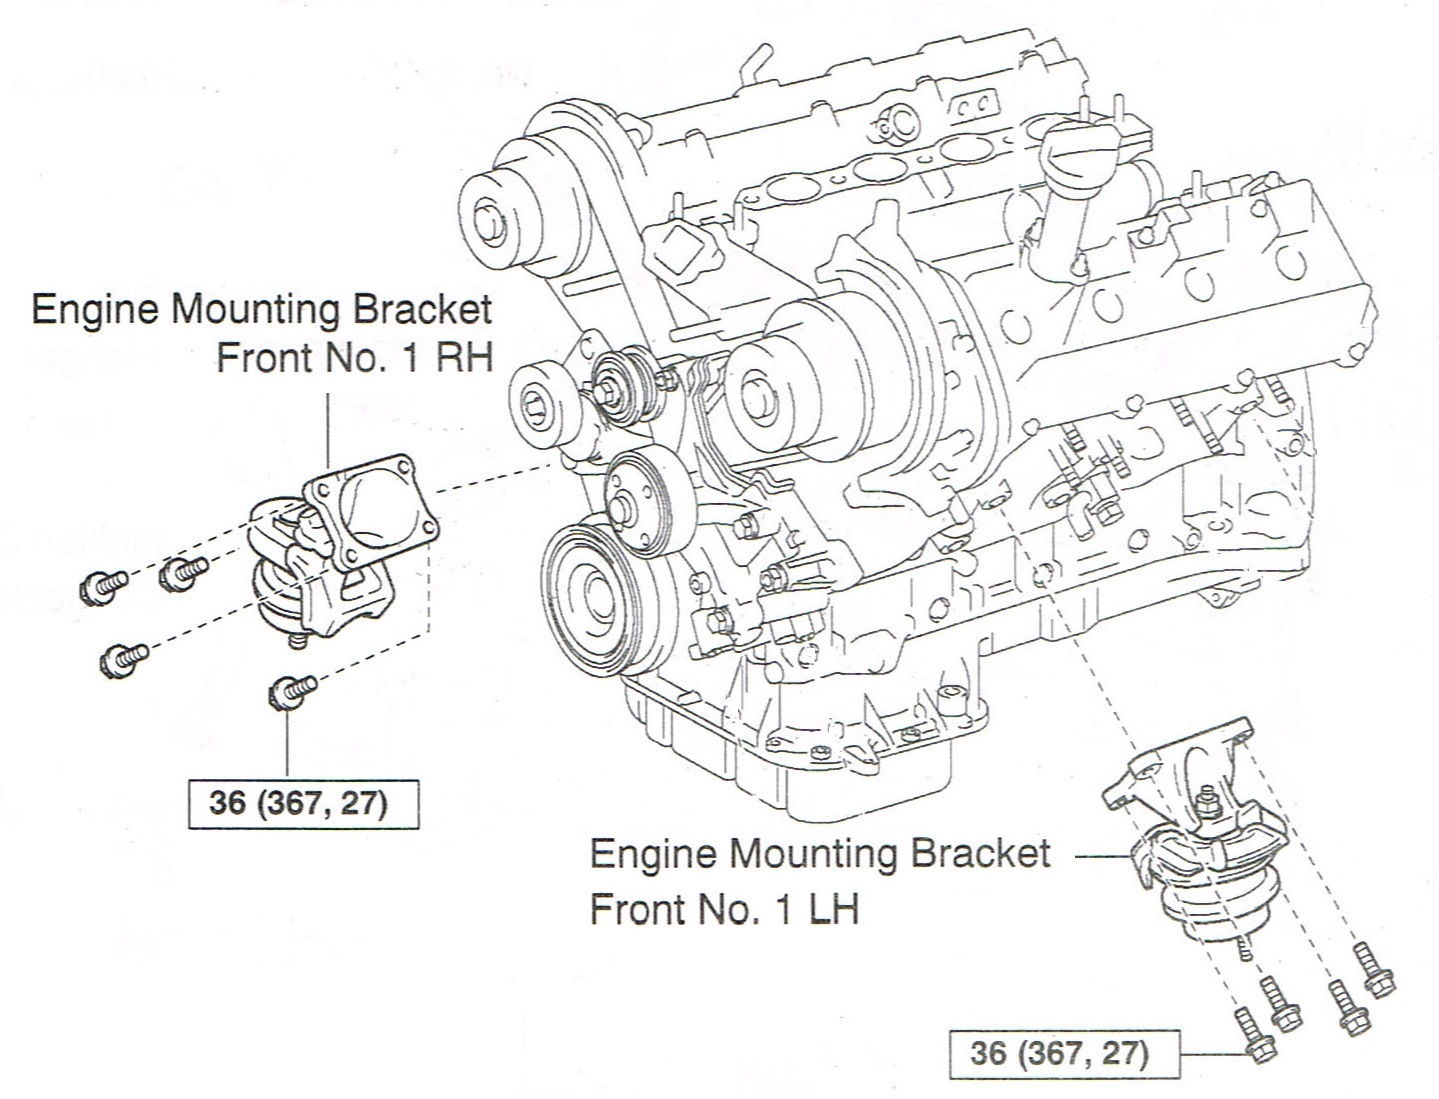 Lexus Is300 Wiring Schematic Library 1993 Sc400 Engine Diagram 93 Gs300 Get Free Image About